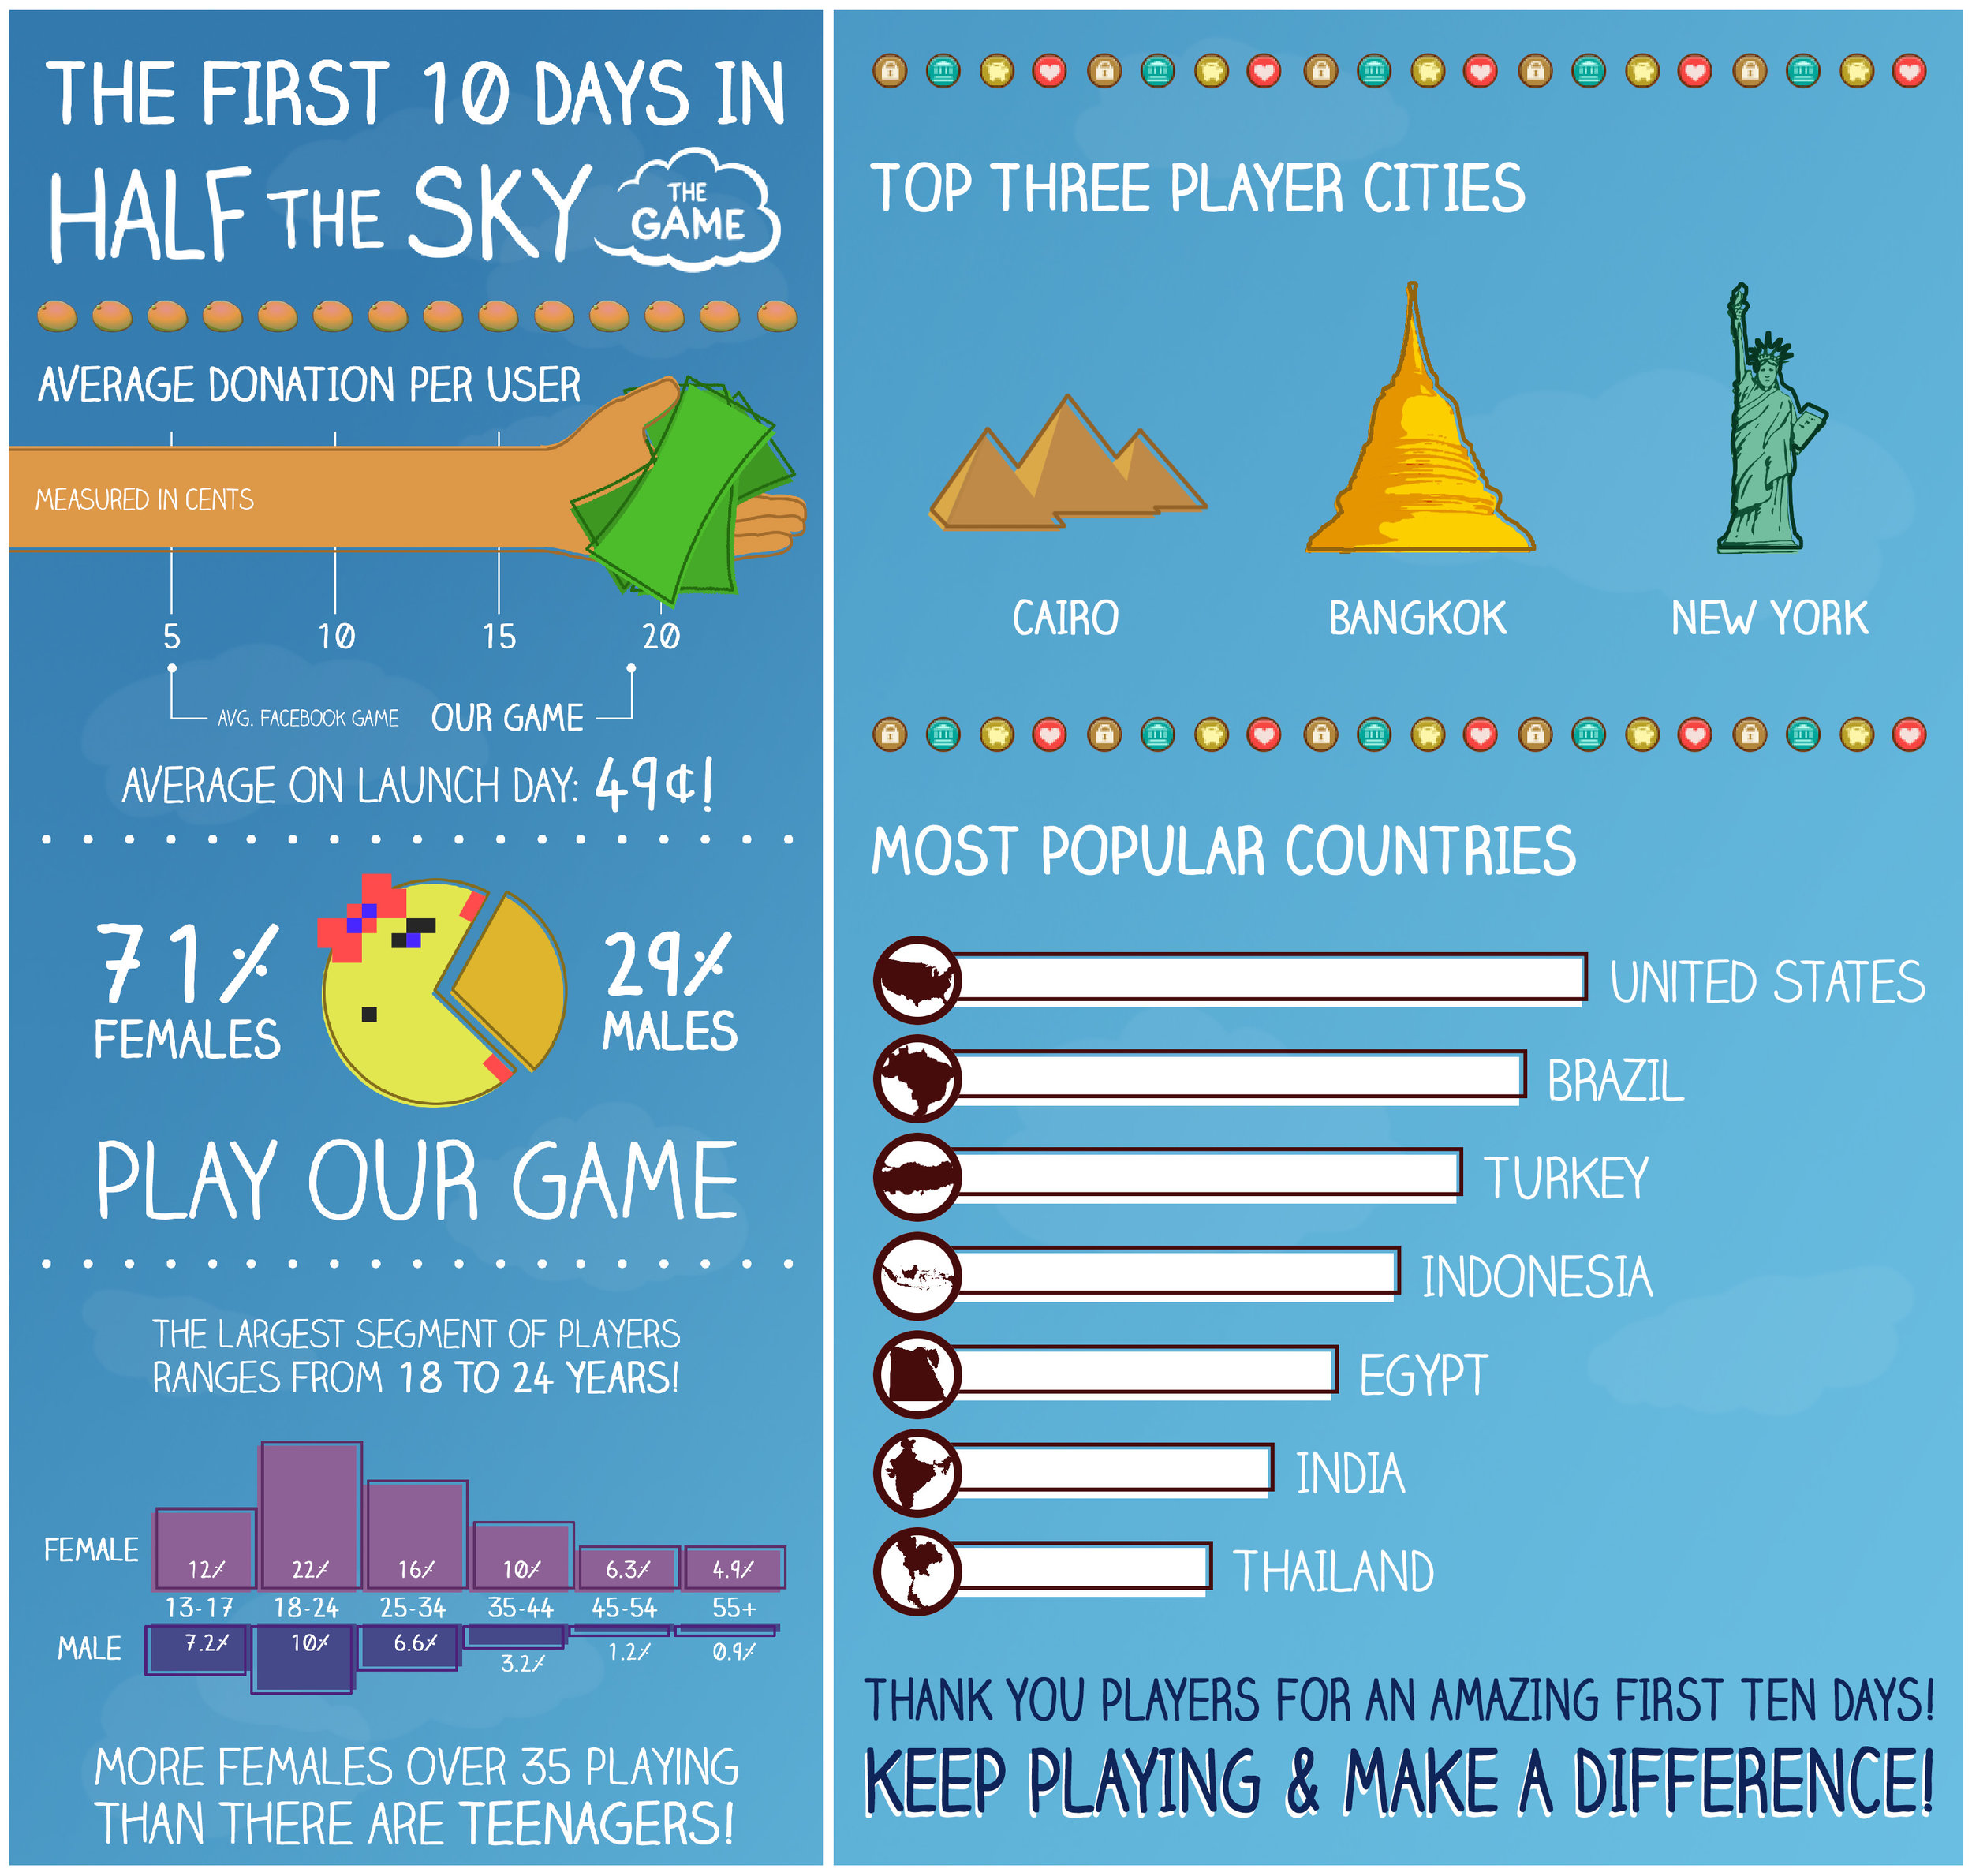 Infographic documenting the game's first 10 days post-launch.